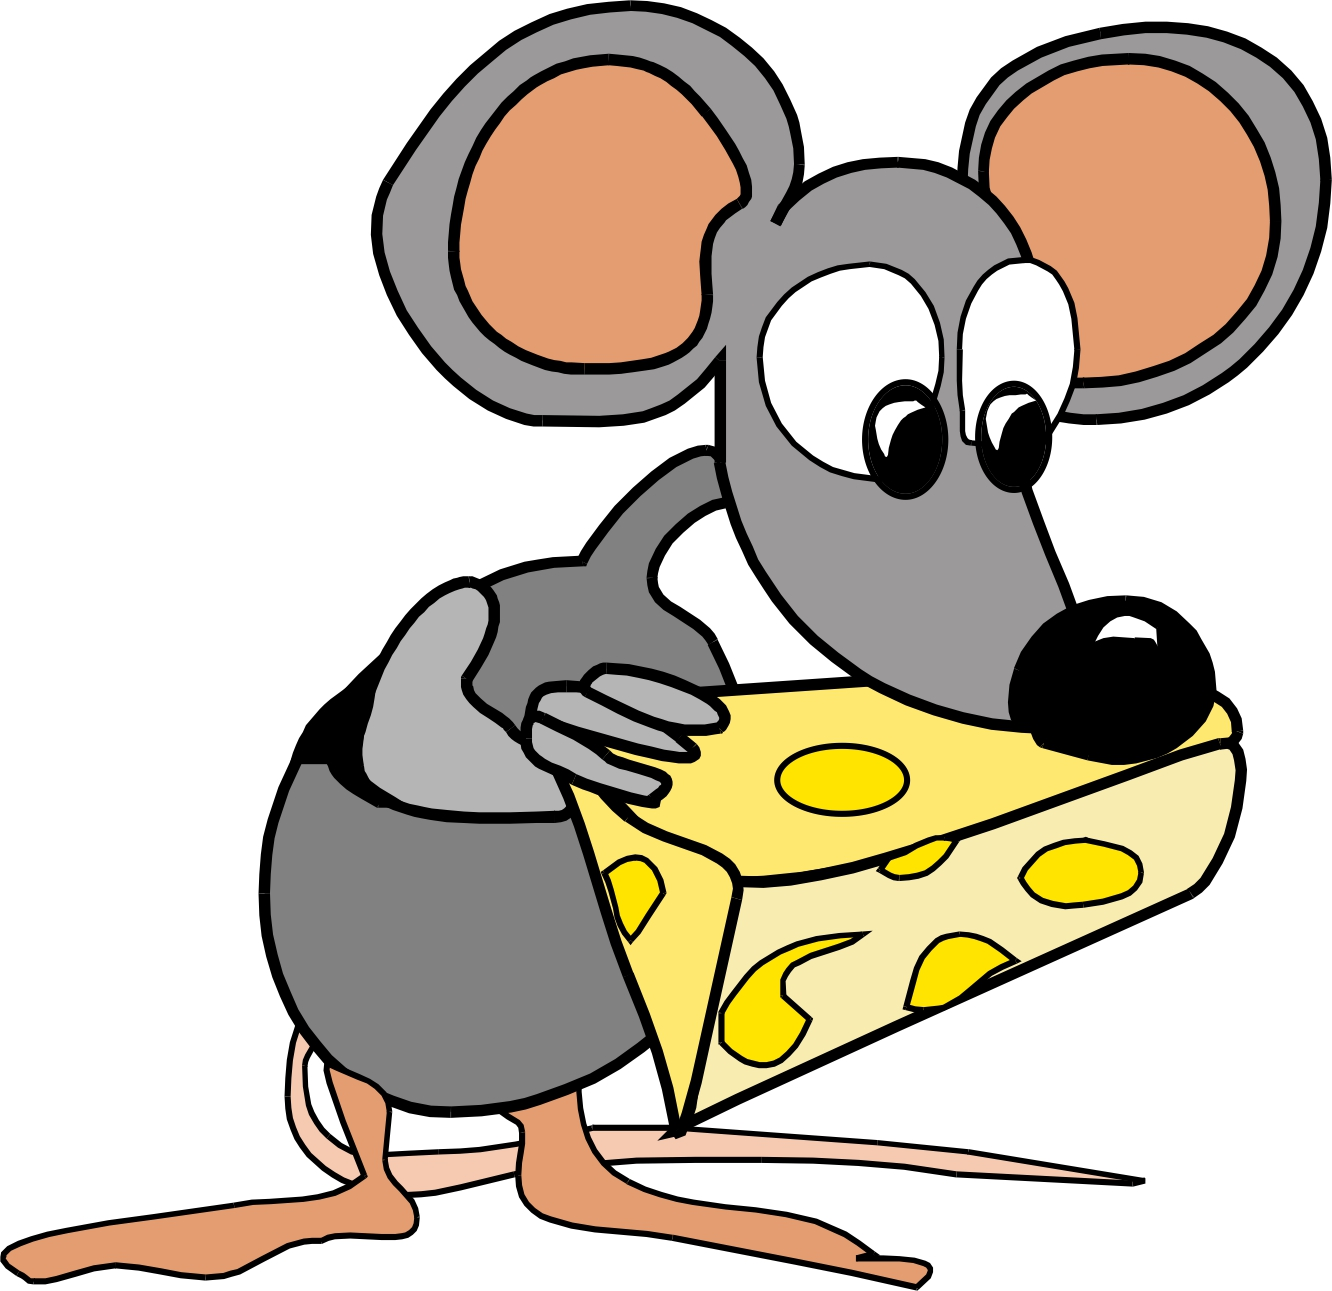 1332x1291 Mouse Clipart Cartoon Character